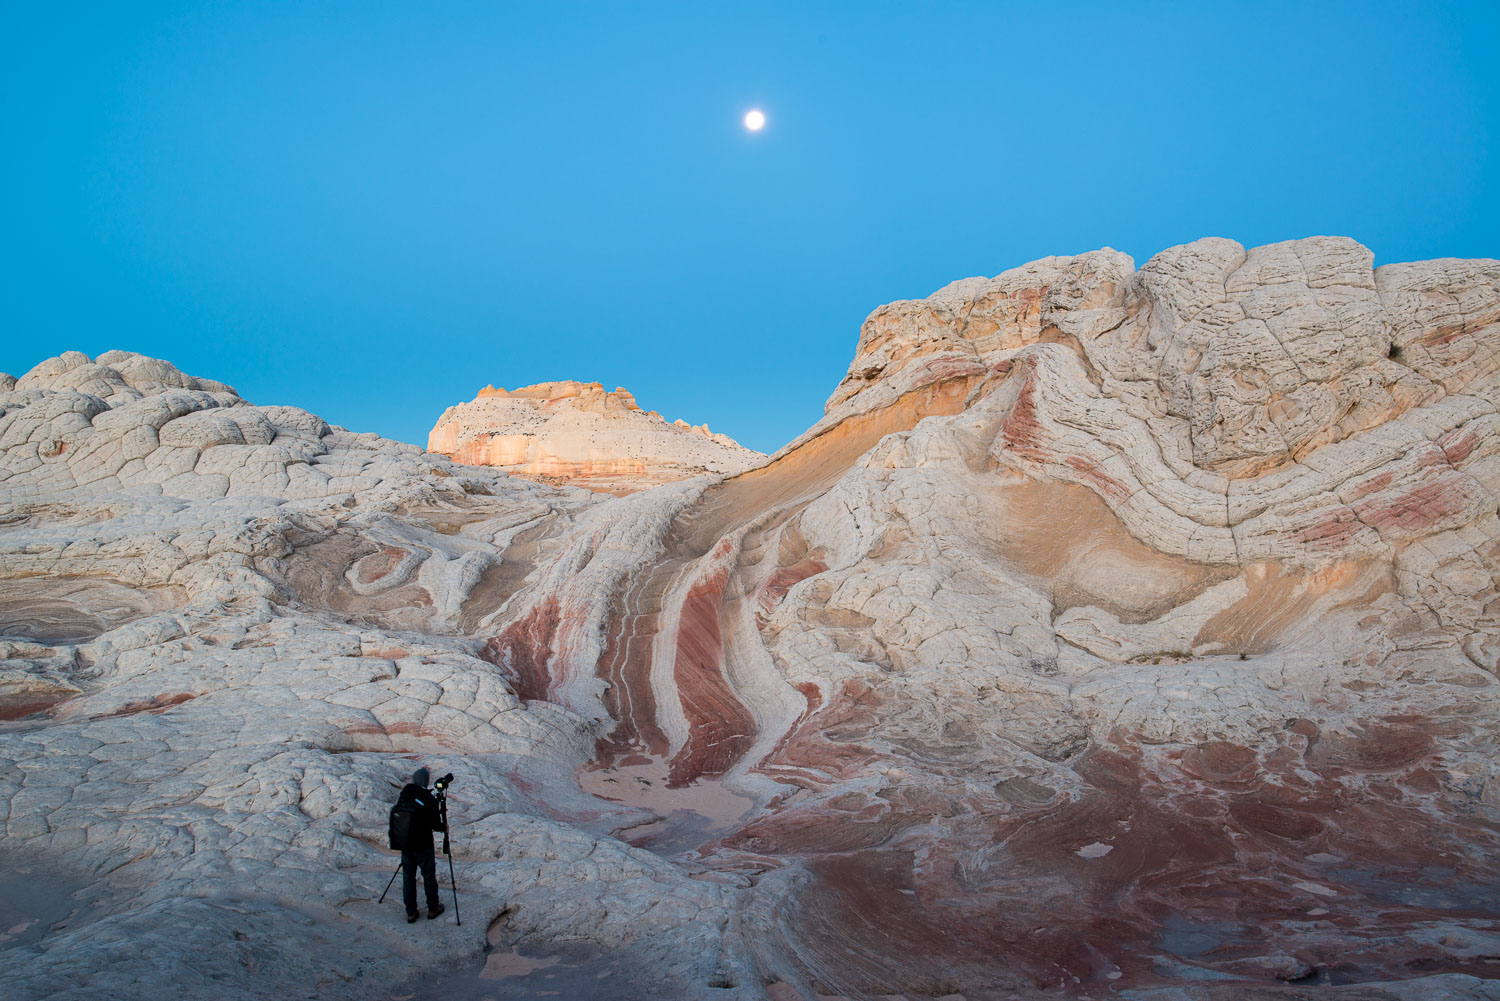 Photographer shooting the landscape and moon at Vermillion Cliff